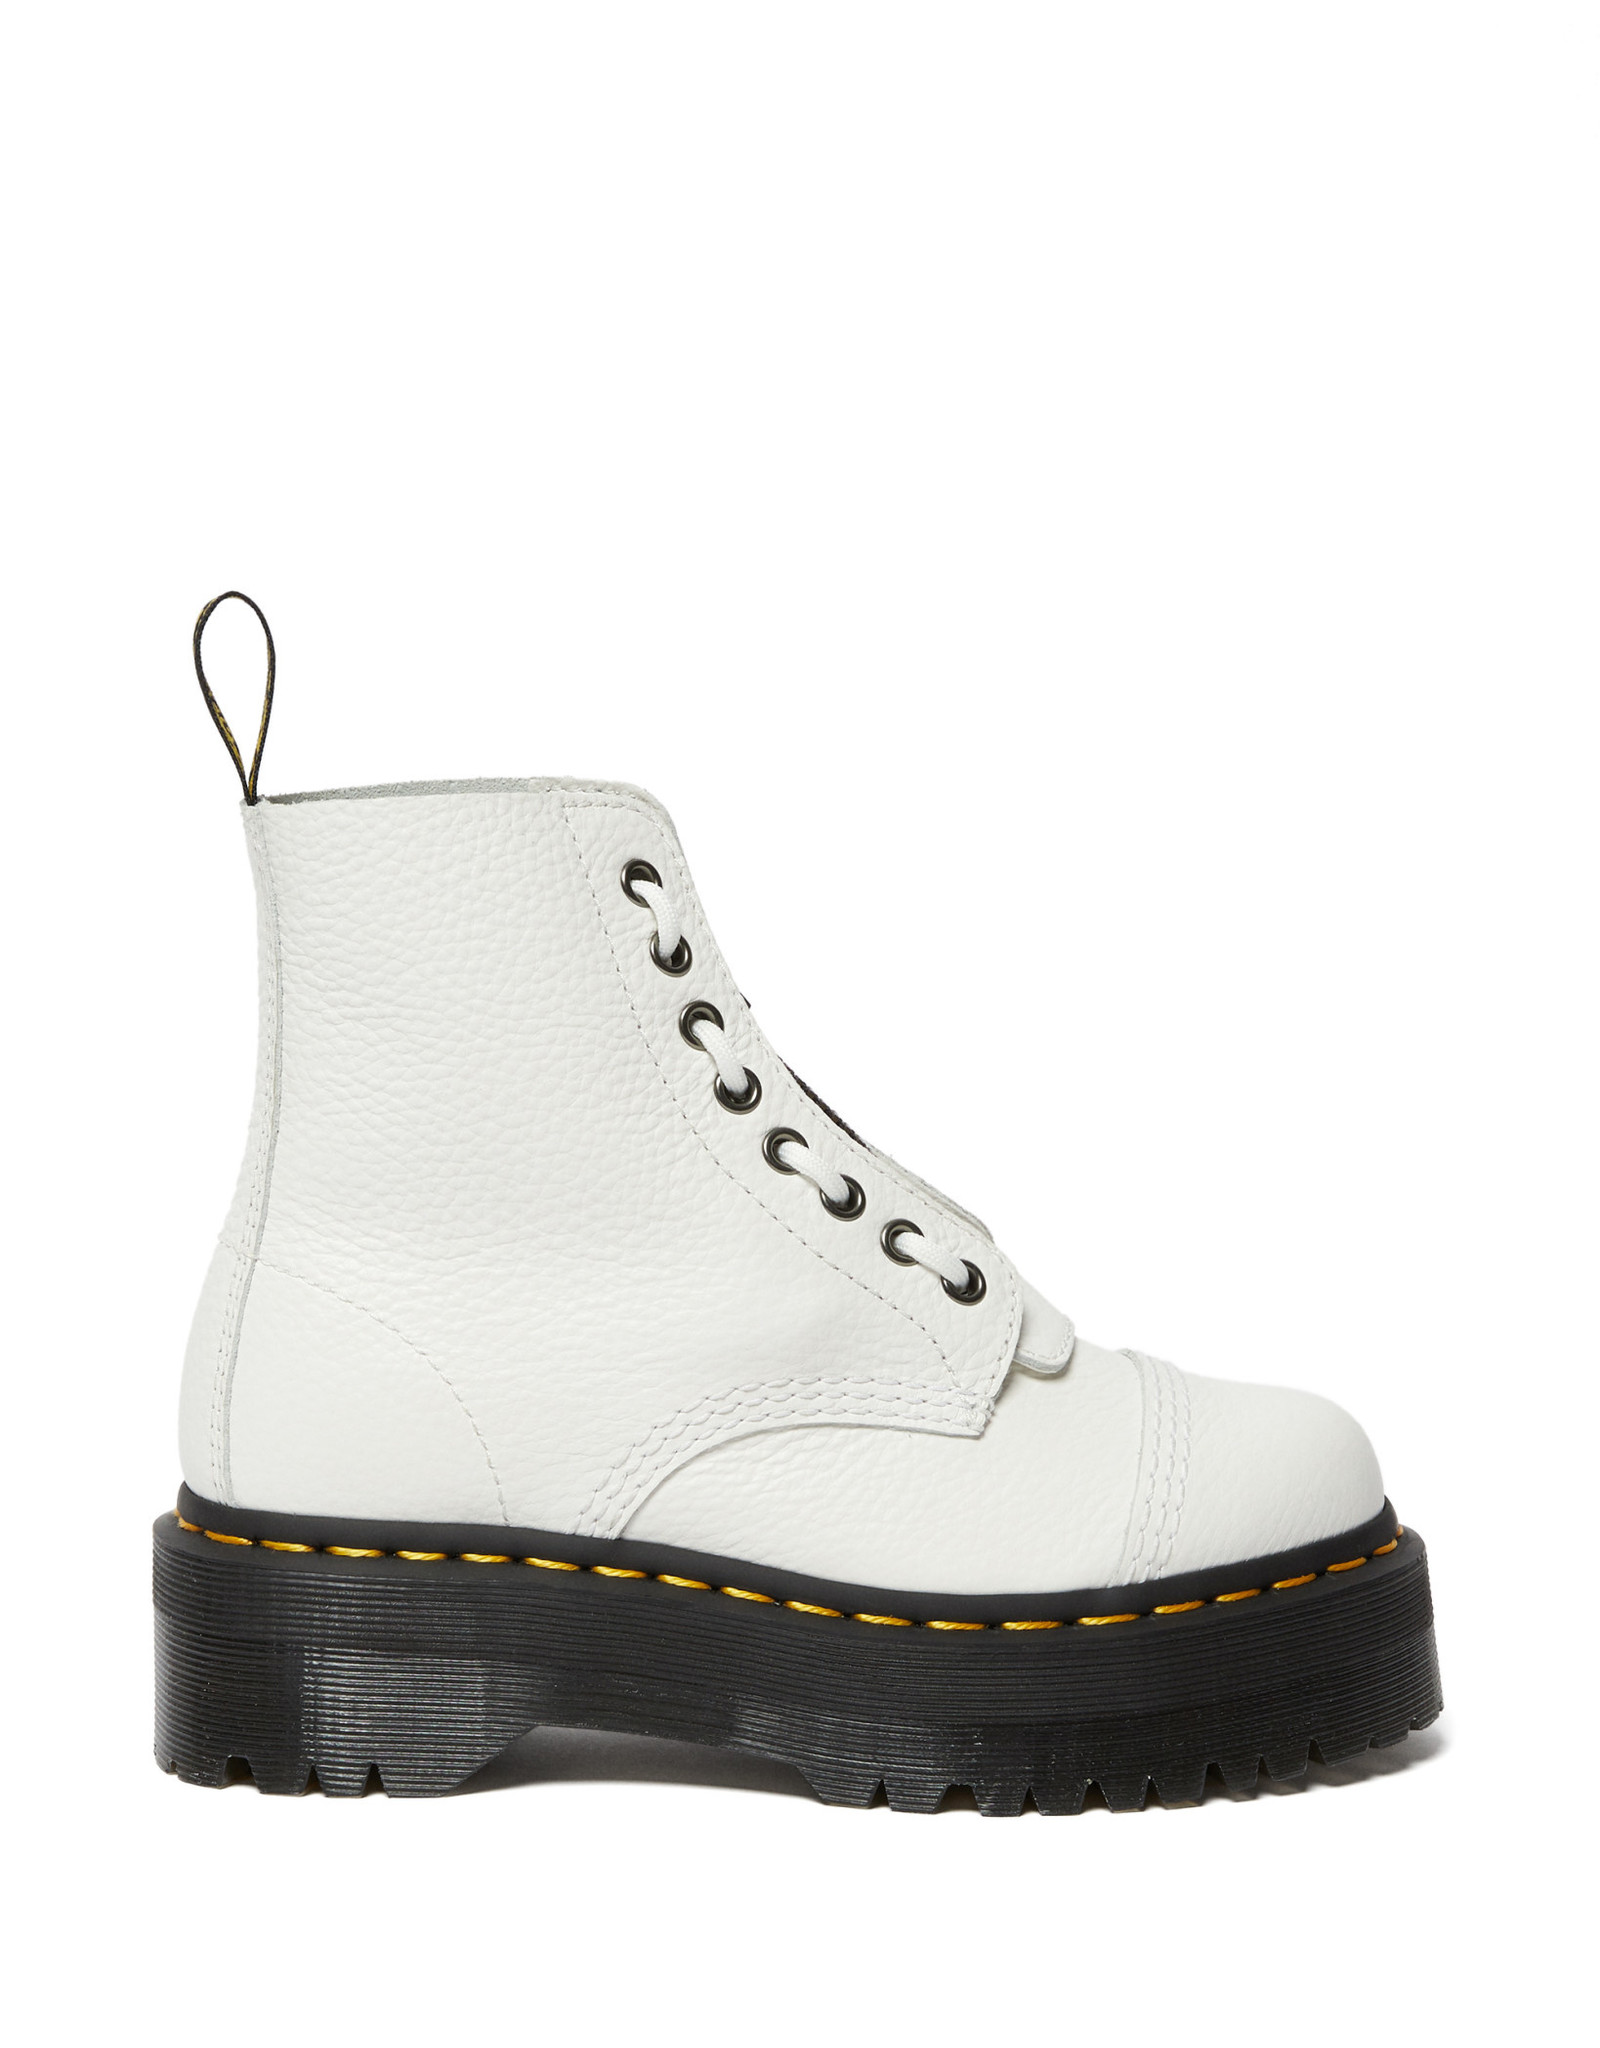 DR. MARTENS SINCLAIR WHITE AUNT SALLY 851W-R26261100